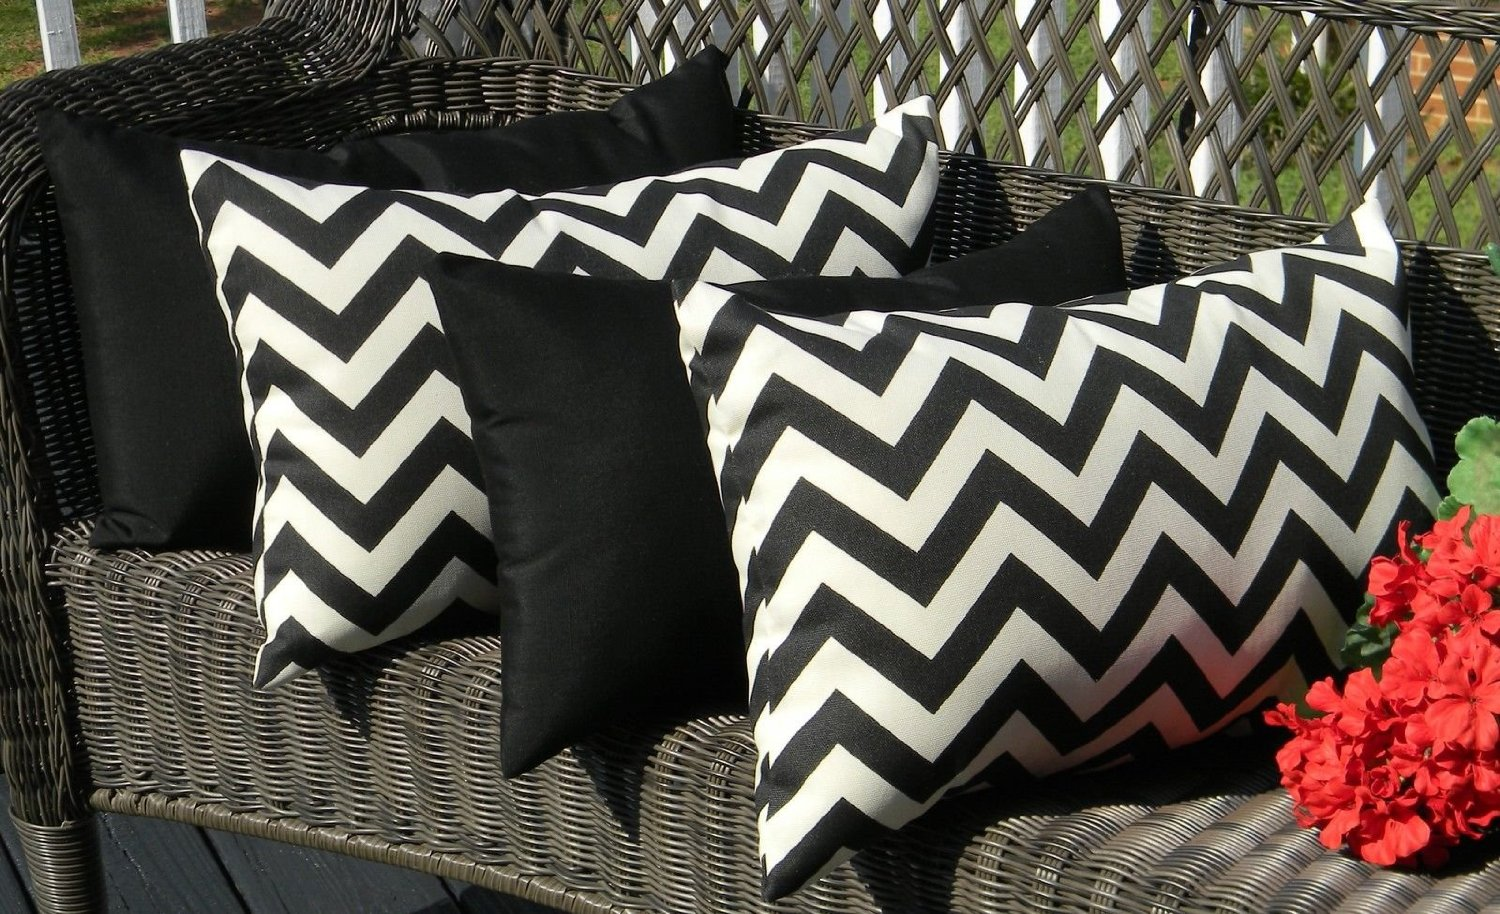 Set of 4 Indoor / Outdoor Decorative Lumbar / Rectangle Pillows - 2 Black and Ivory Chevron & Solid Black